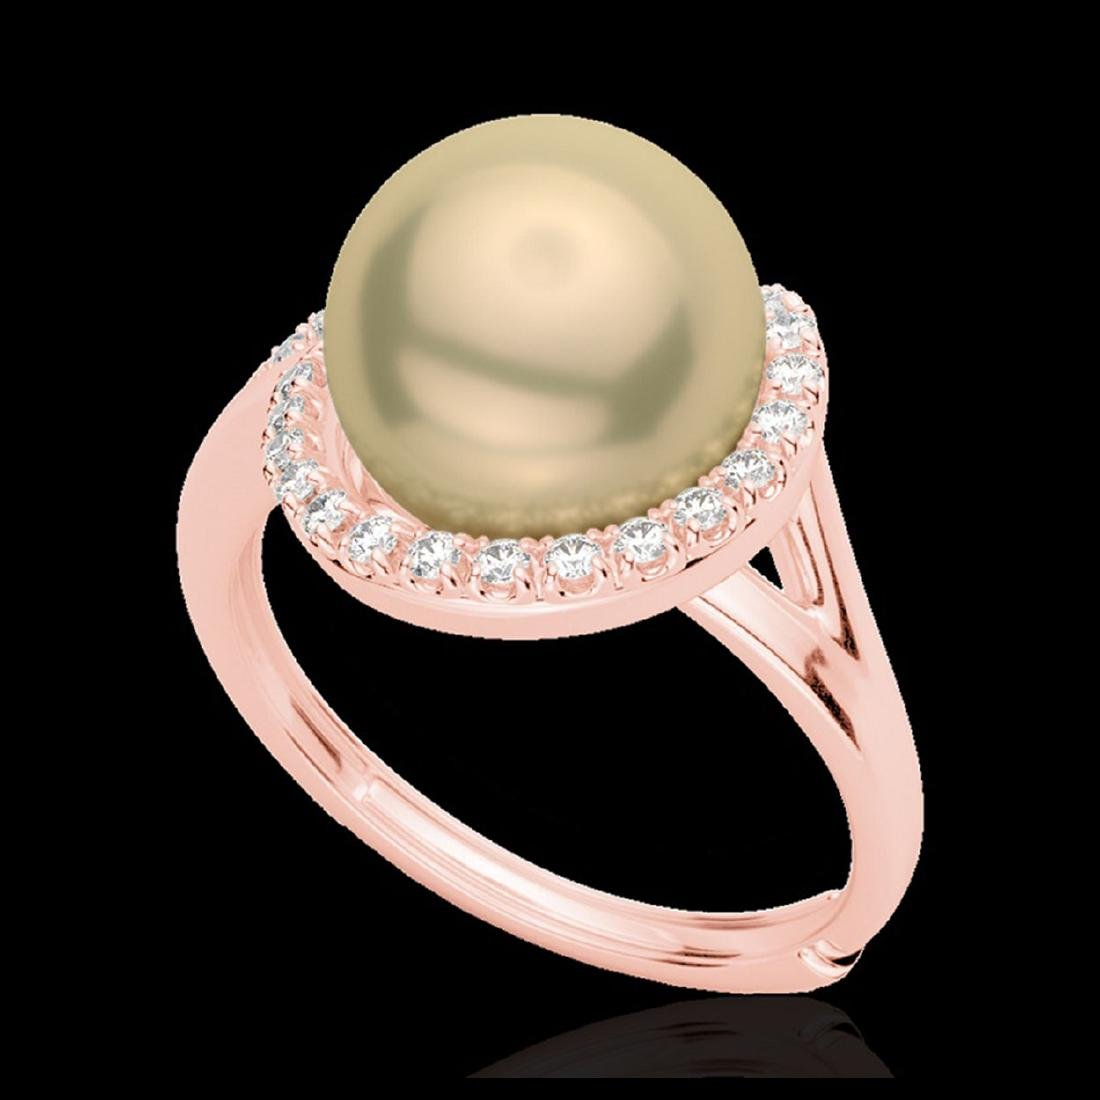 0.27 ctw VS/SI Diamond & Golden Pearl Ring 14K Rose - 2